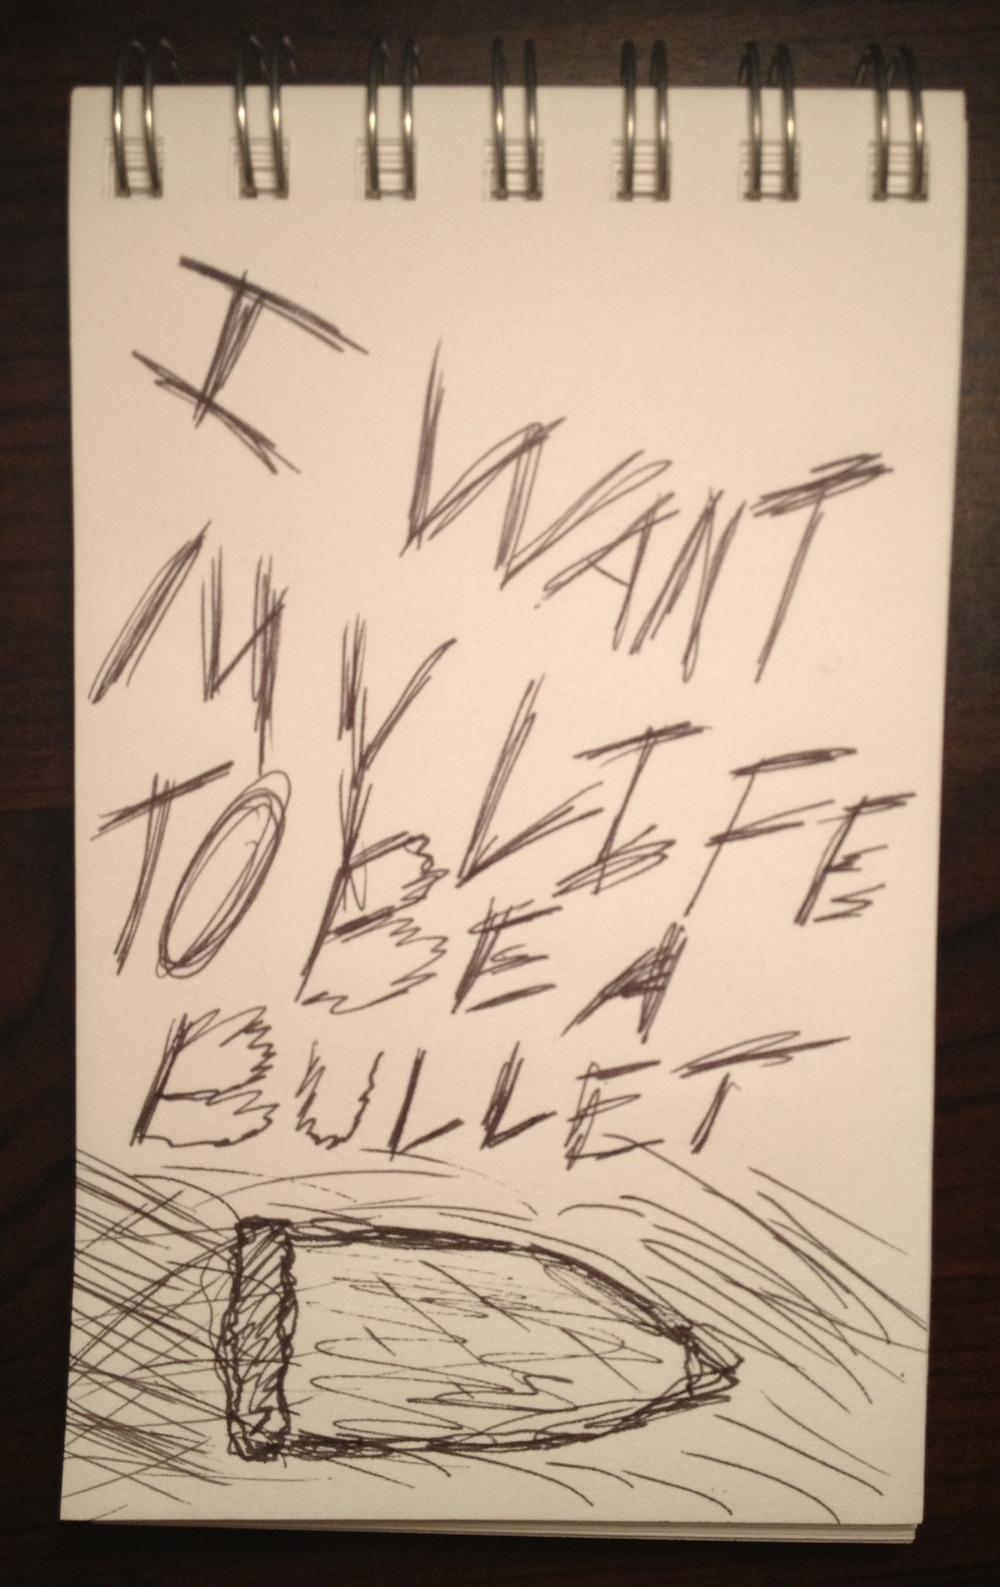 I Want My Life To Be A Bullet